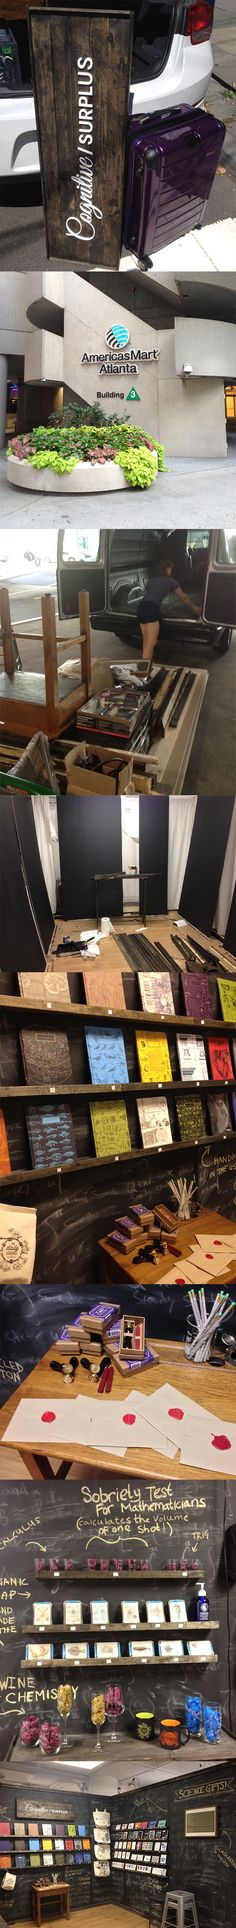 Cognitive Surplus goes to #AmericasMart in #Atlanta! Come check us out in Building 3, Floor 5, OnTrend Gifts Booth #1110!